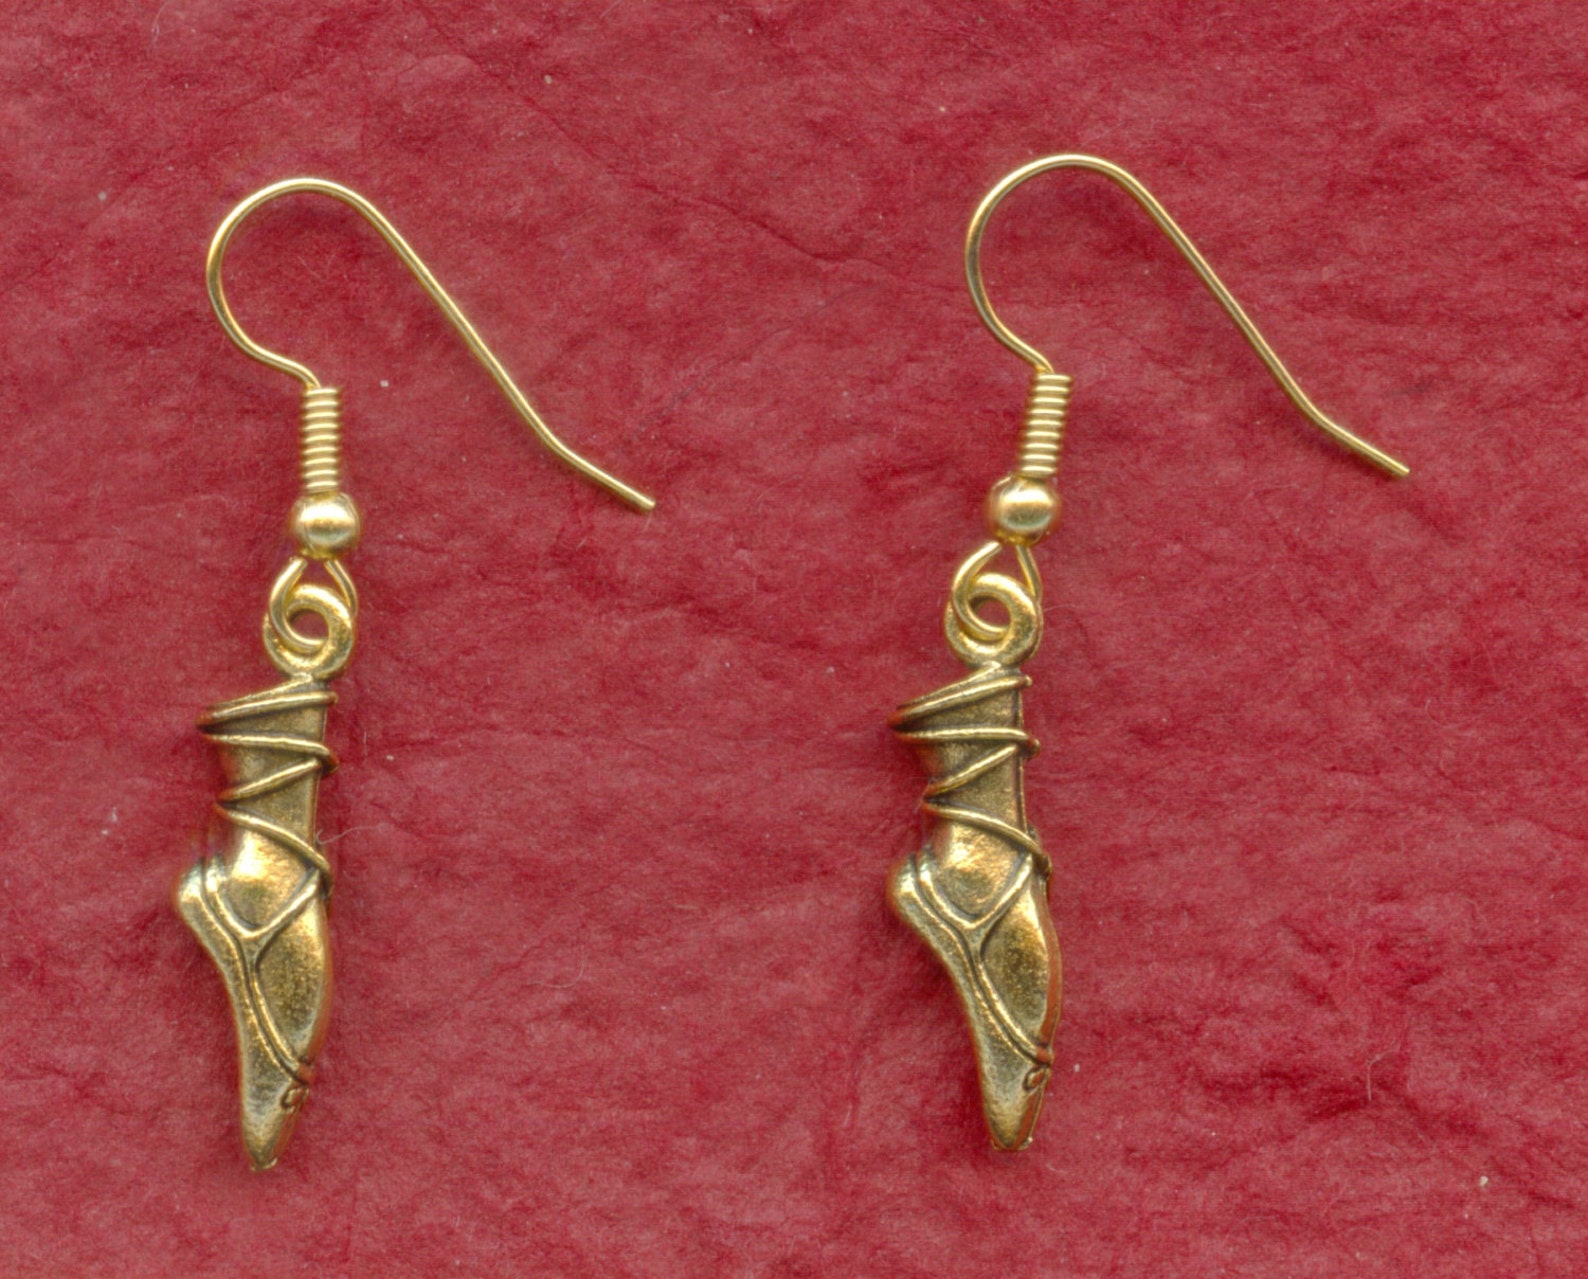 dance earrings, ballet earrings, pointe earrings, 3d gold or silver plated, dancer gift